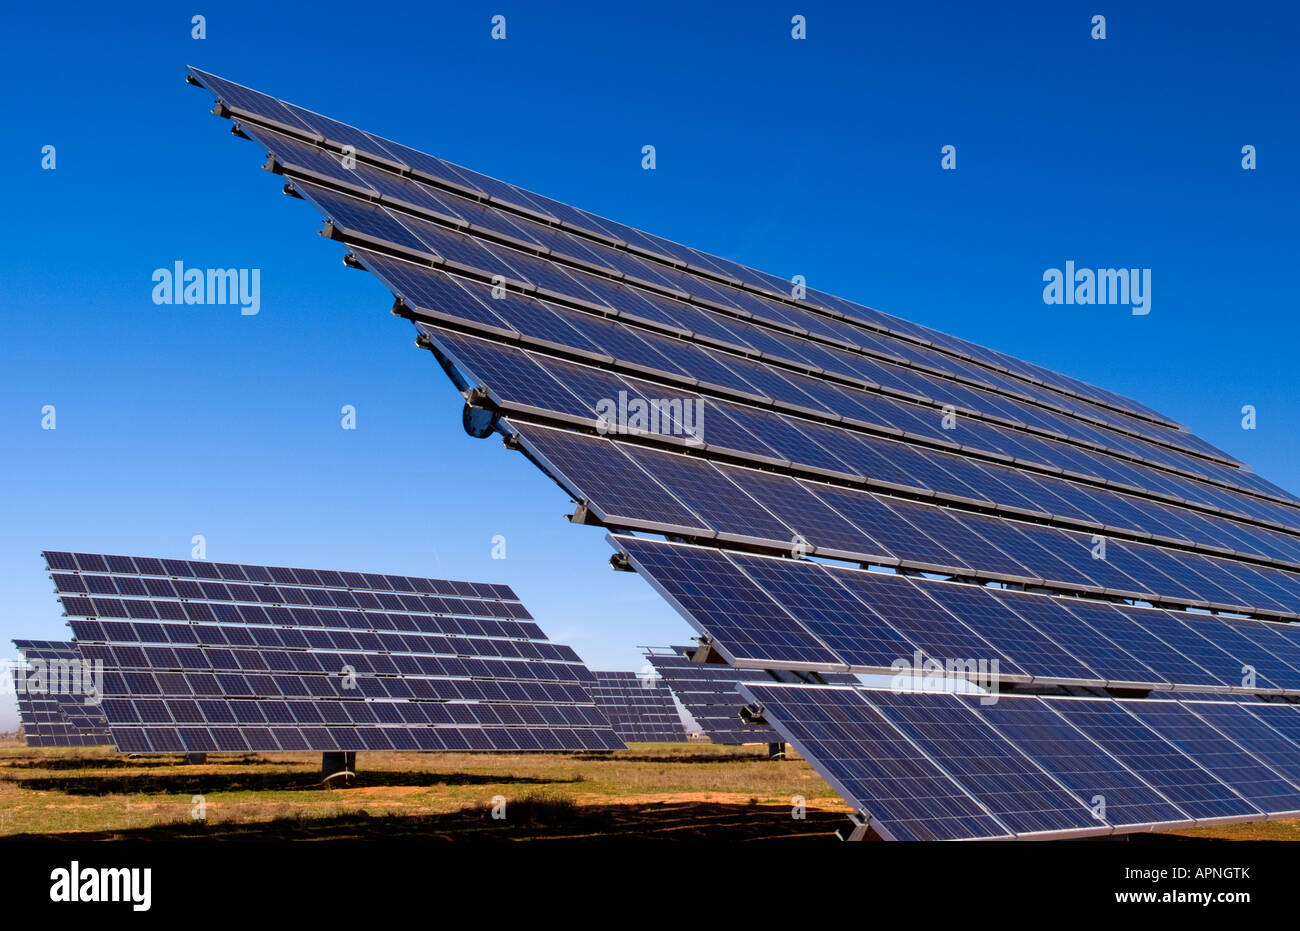 Abstract images of solar panels to store electricity and power near on electricity from gas, electricity from oil, electricity from windmills, electricity from geothermal, electricity from biomass, electricity from battery, electricity from wind,